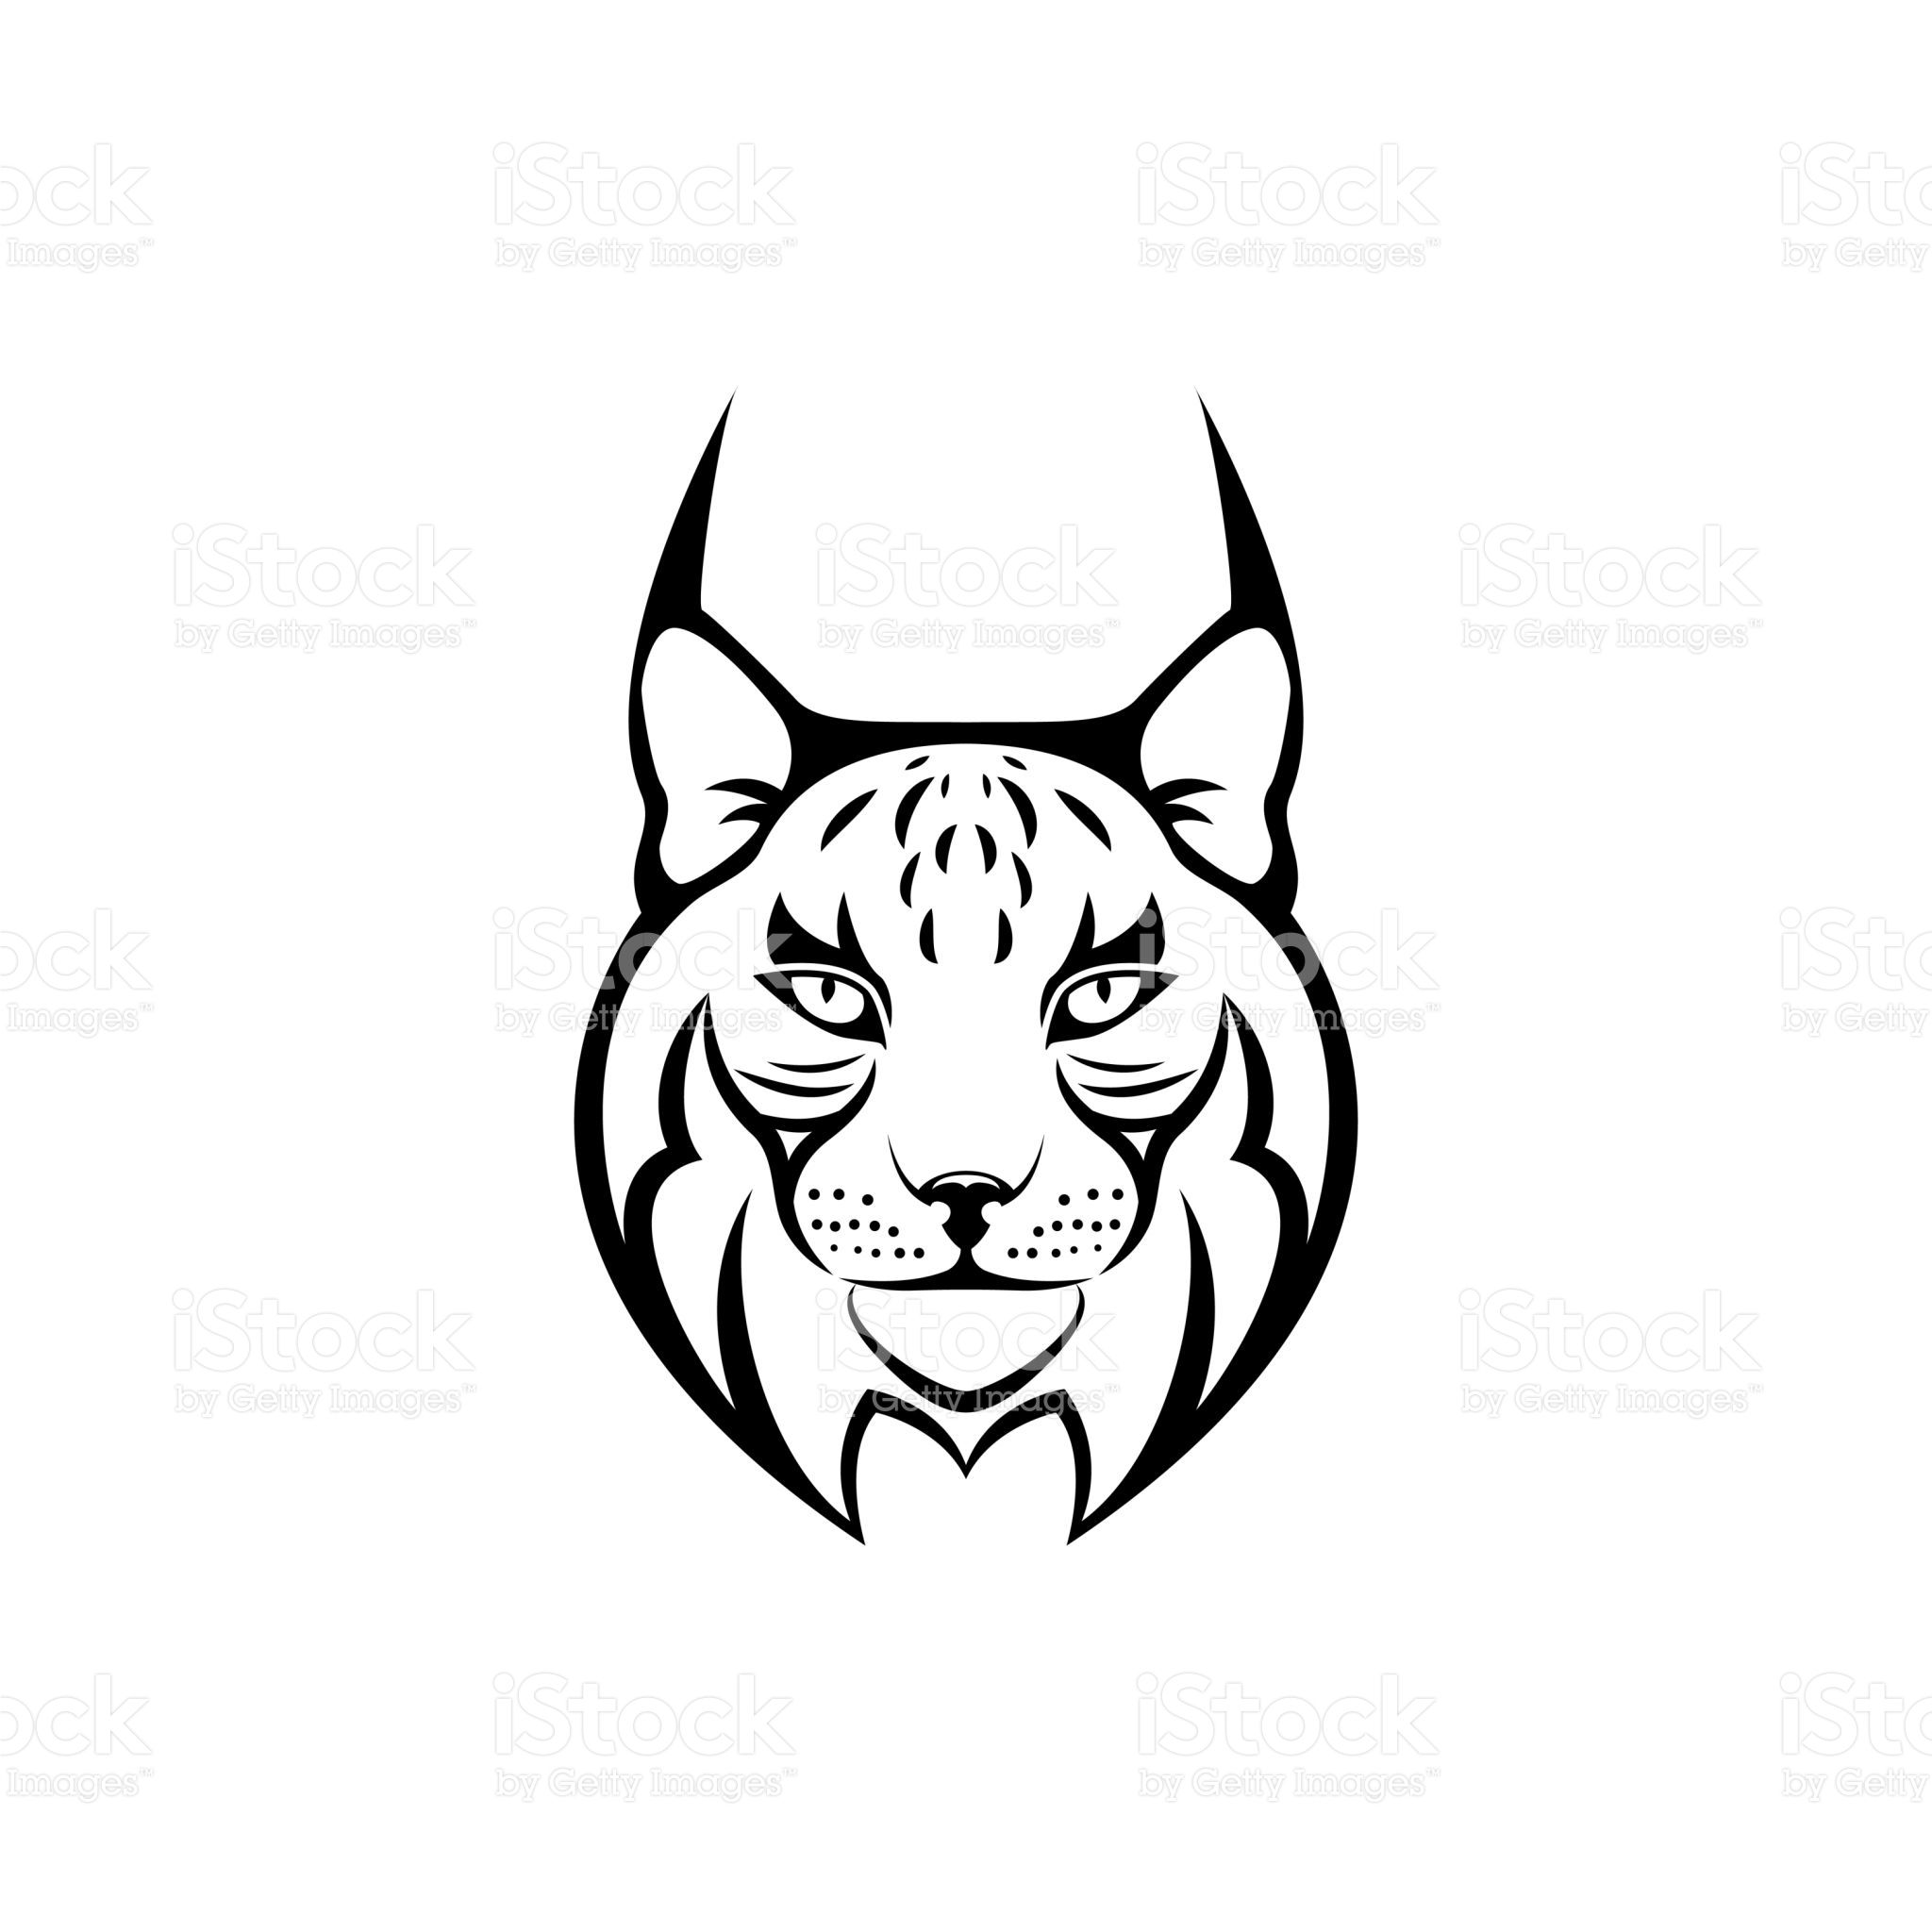 Puma Anthro Lion Head Template Wwwmiifotoscom